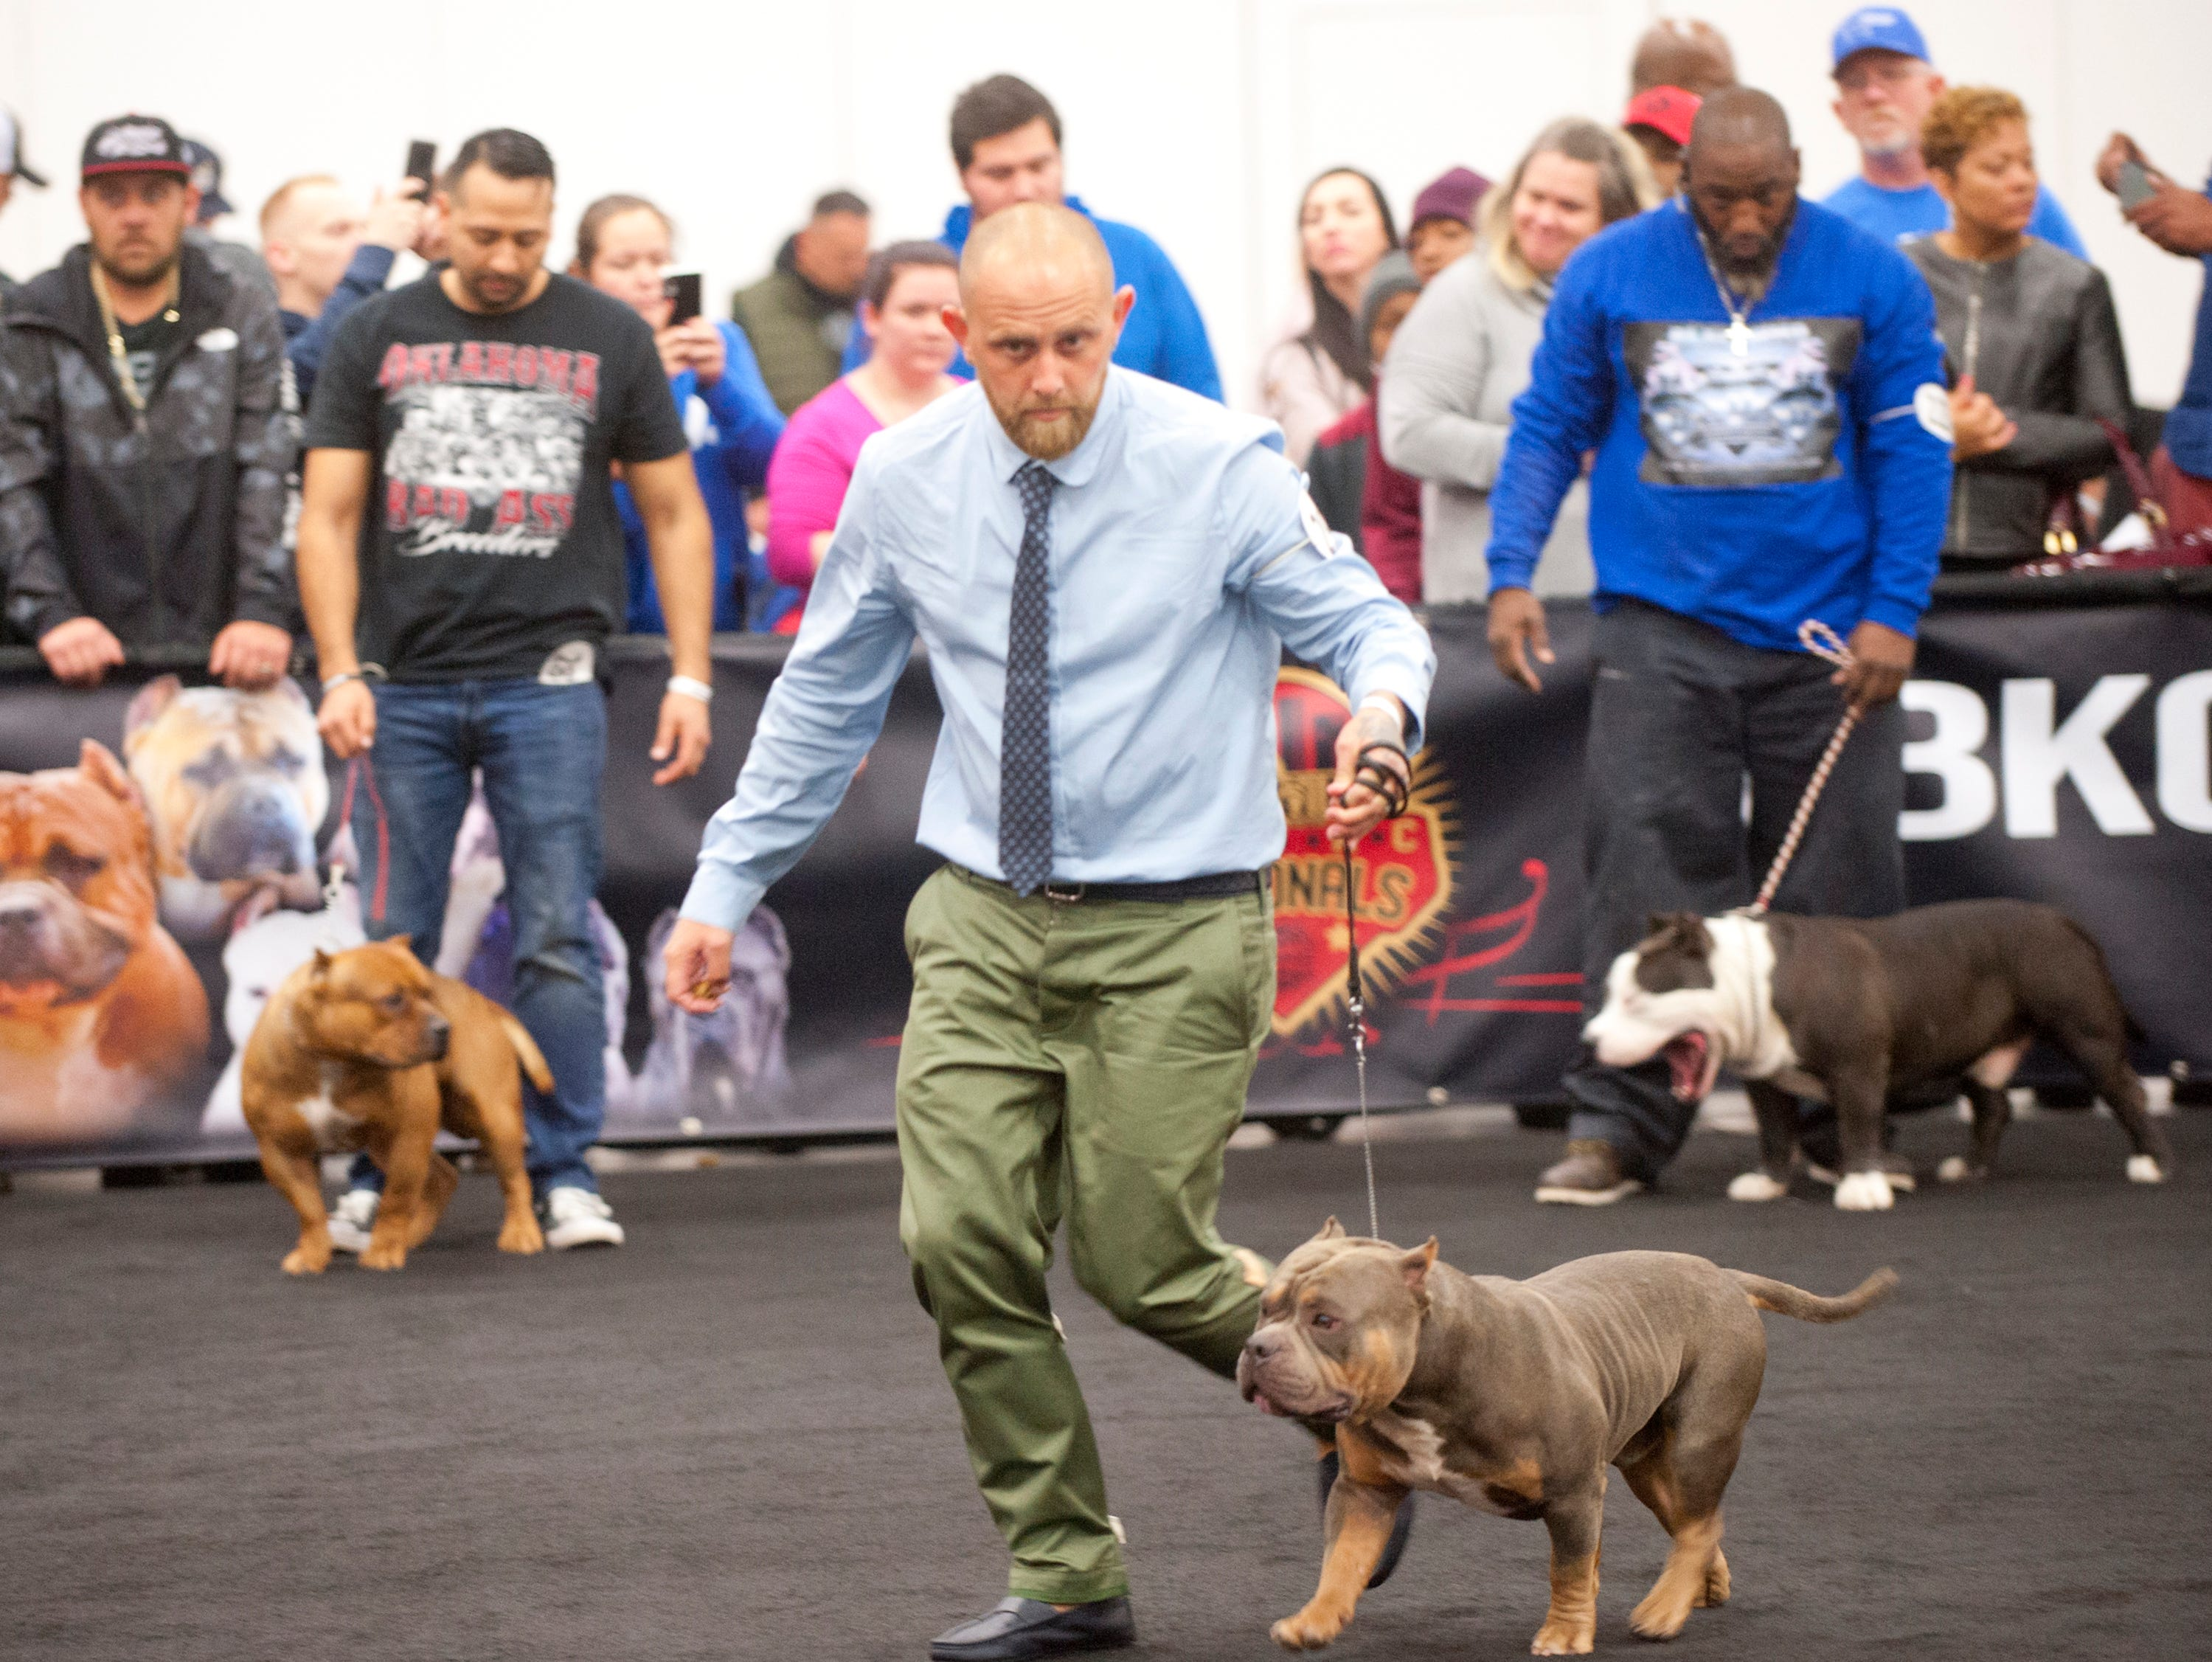 Handler Matt Cottrell of Kingdom Kennels of Barbados, runs Cross around the ring in the Pocket Bull (age 1-2) category during the 2018 American Bully Kennel Club's 12th annual confirmation event at the Kentucky Convention Center in Louisville.November 10, 2018